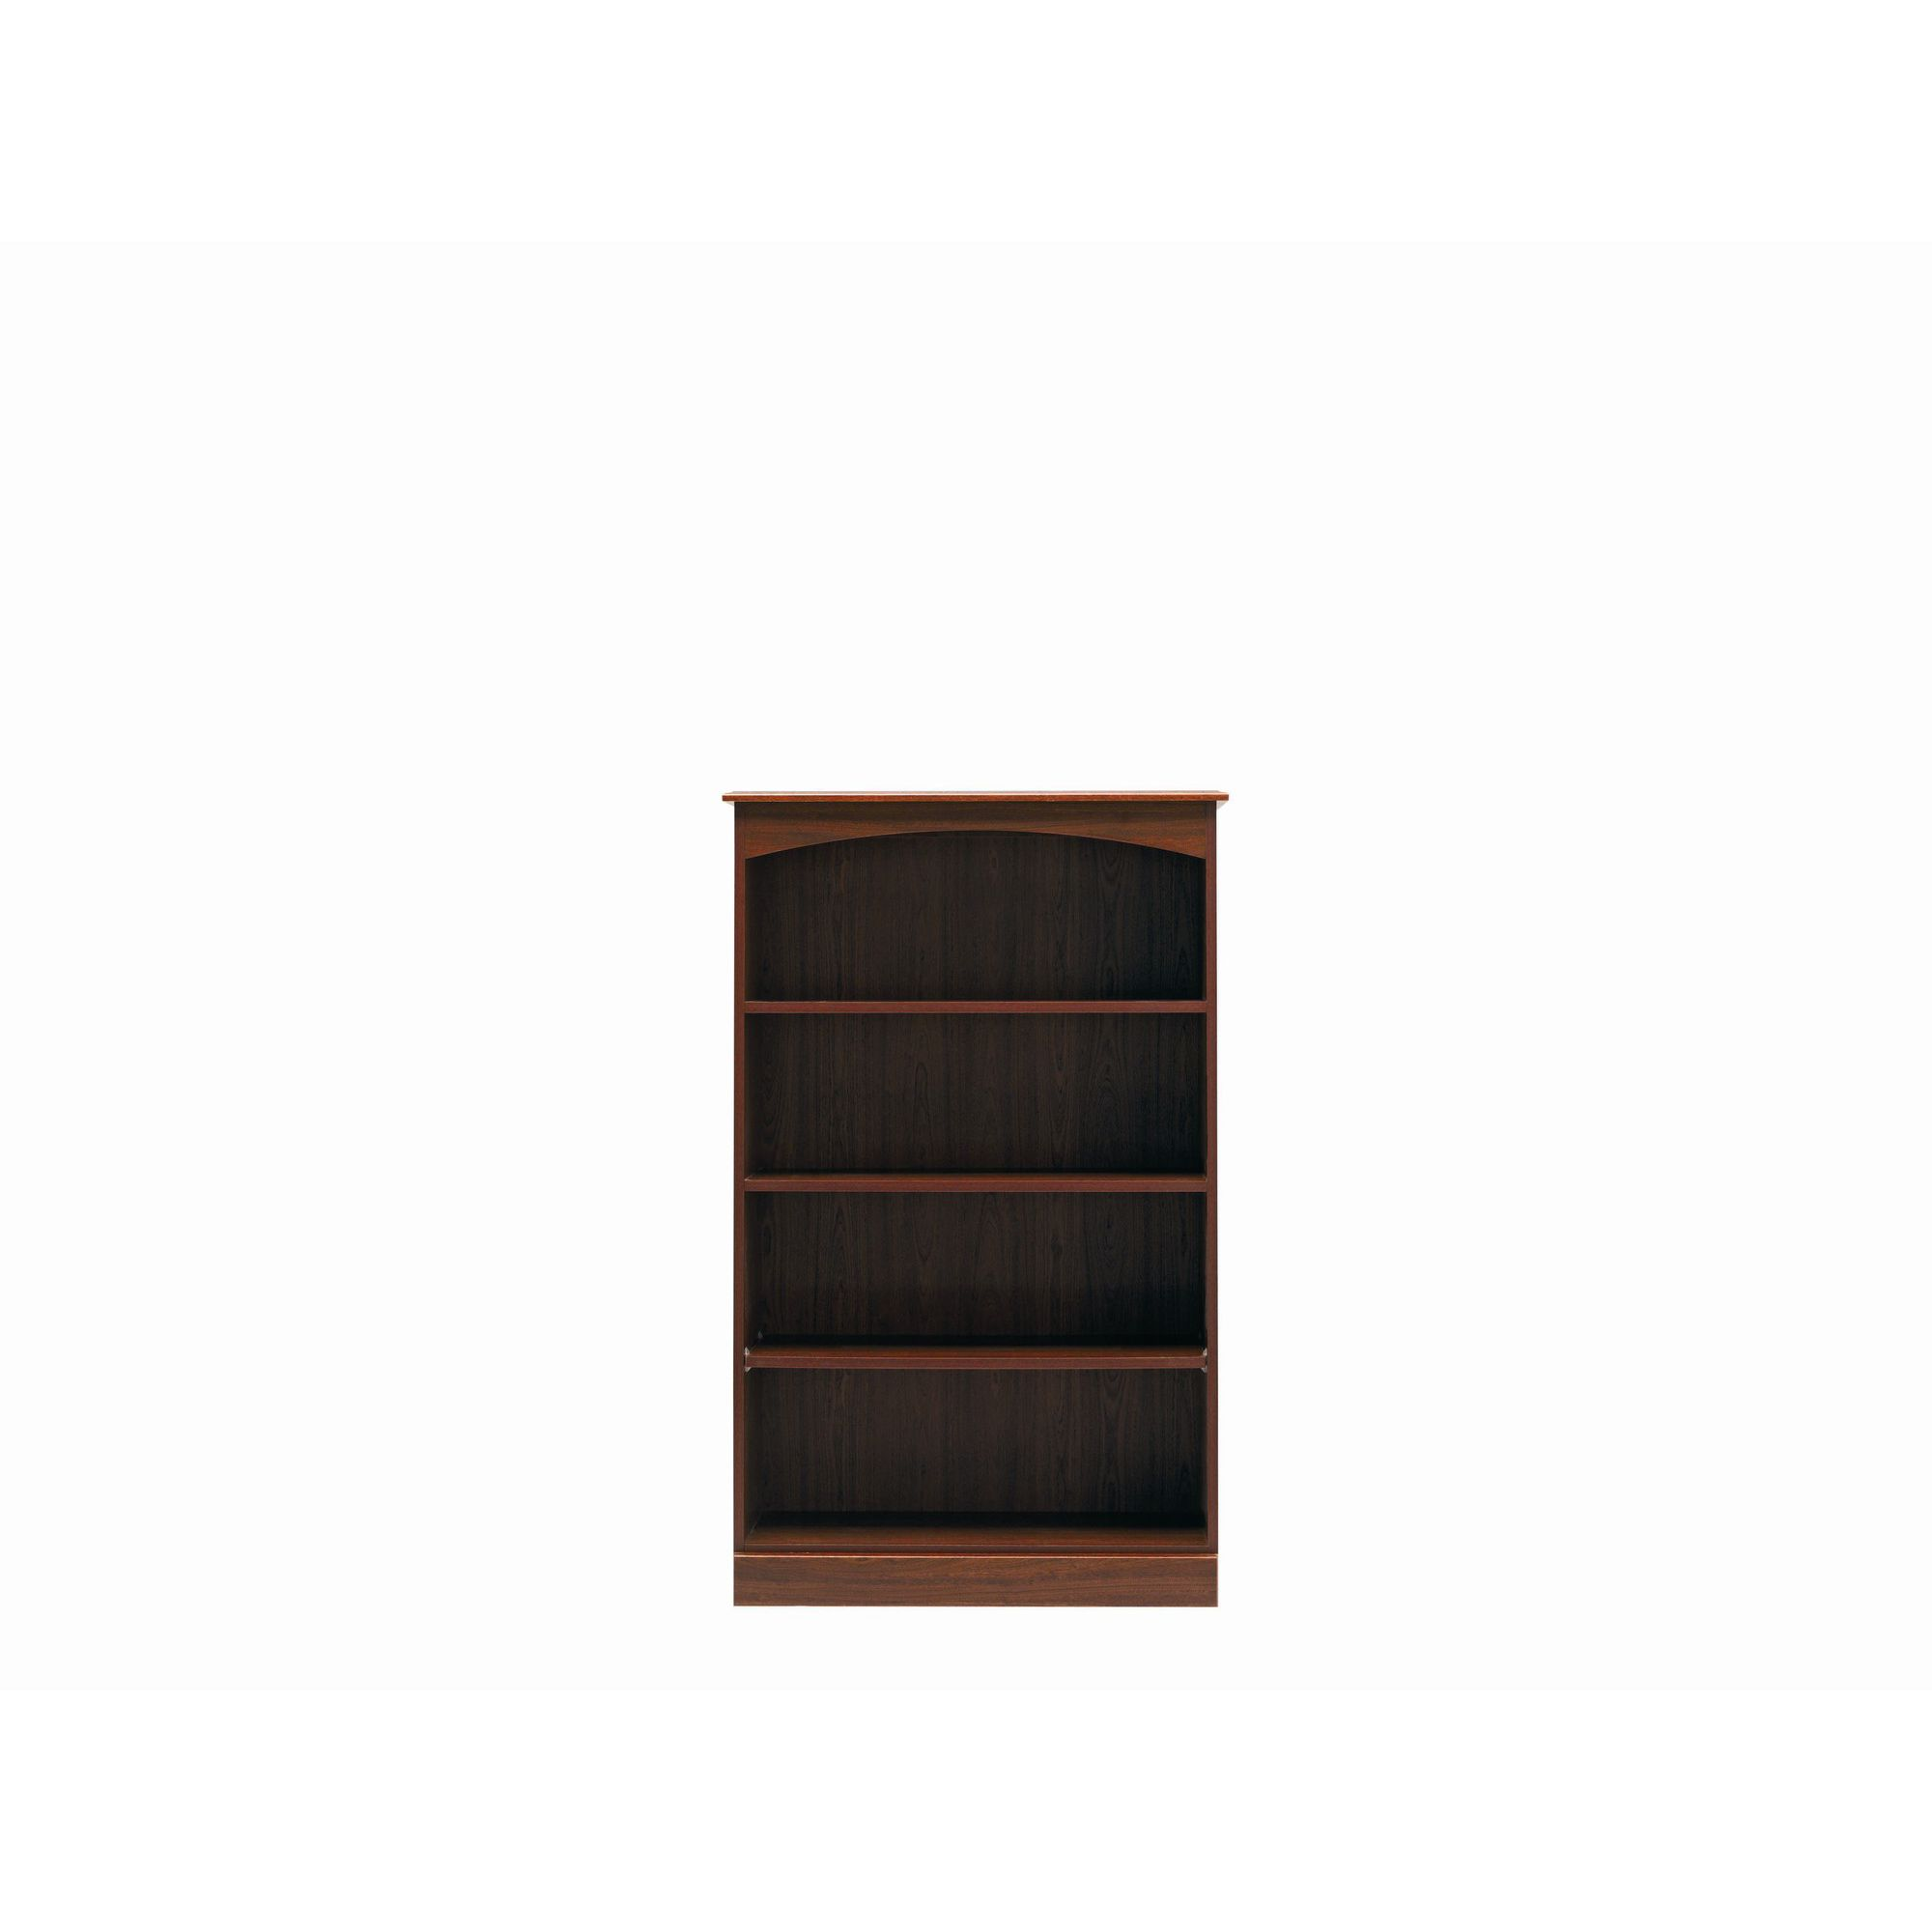 Caxton Byron Medium Height Wide Bookcase in Mahogany at Tesco Direct